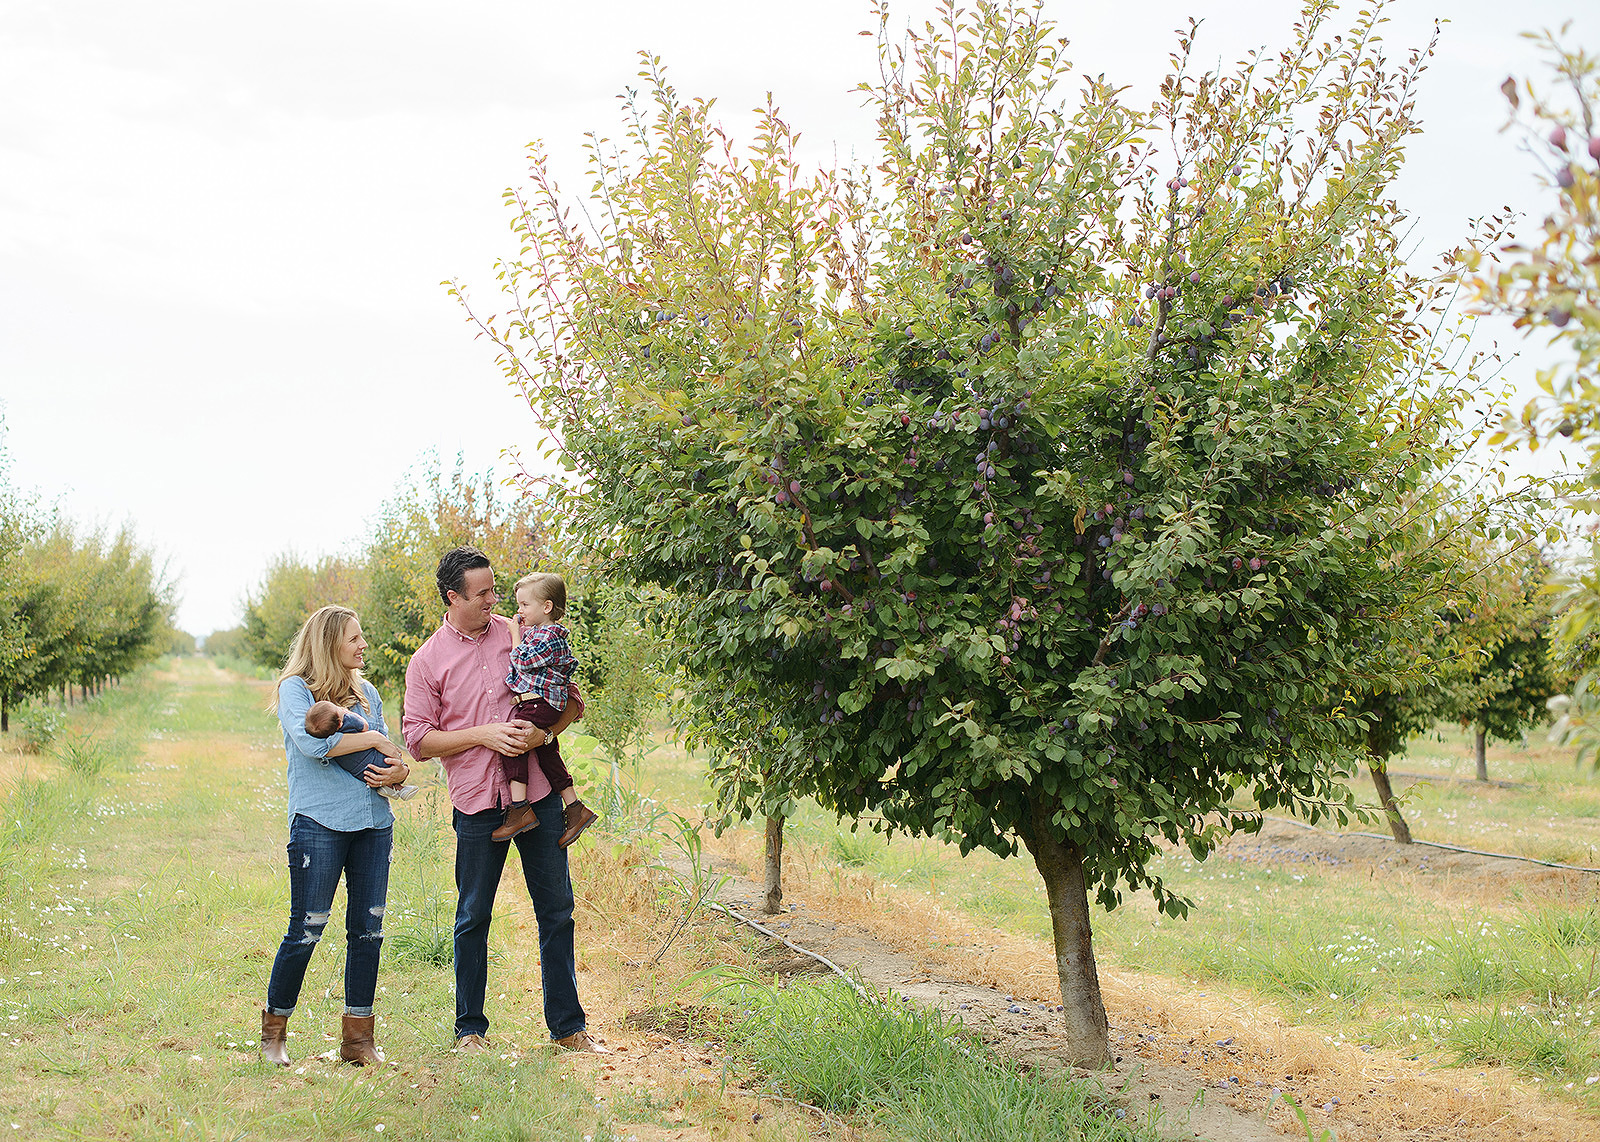 editorial shoot at a prune farm in live oak  california